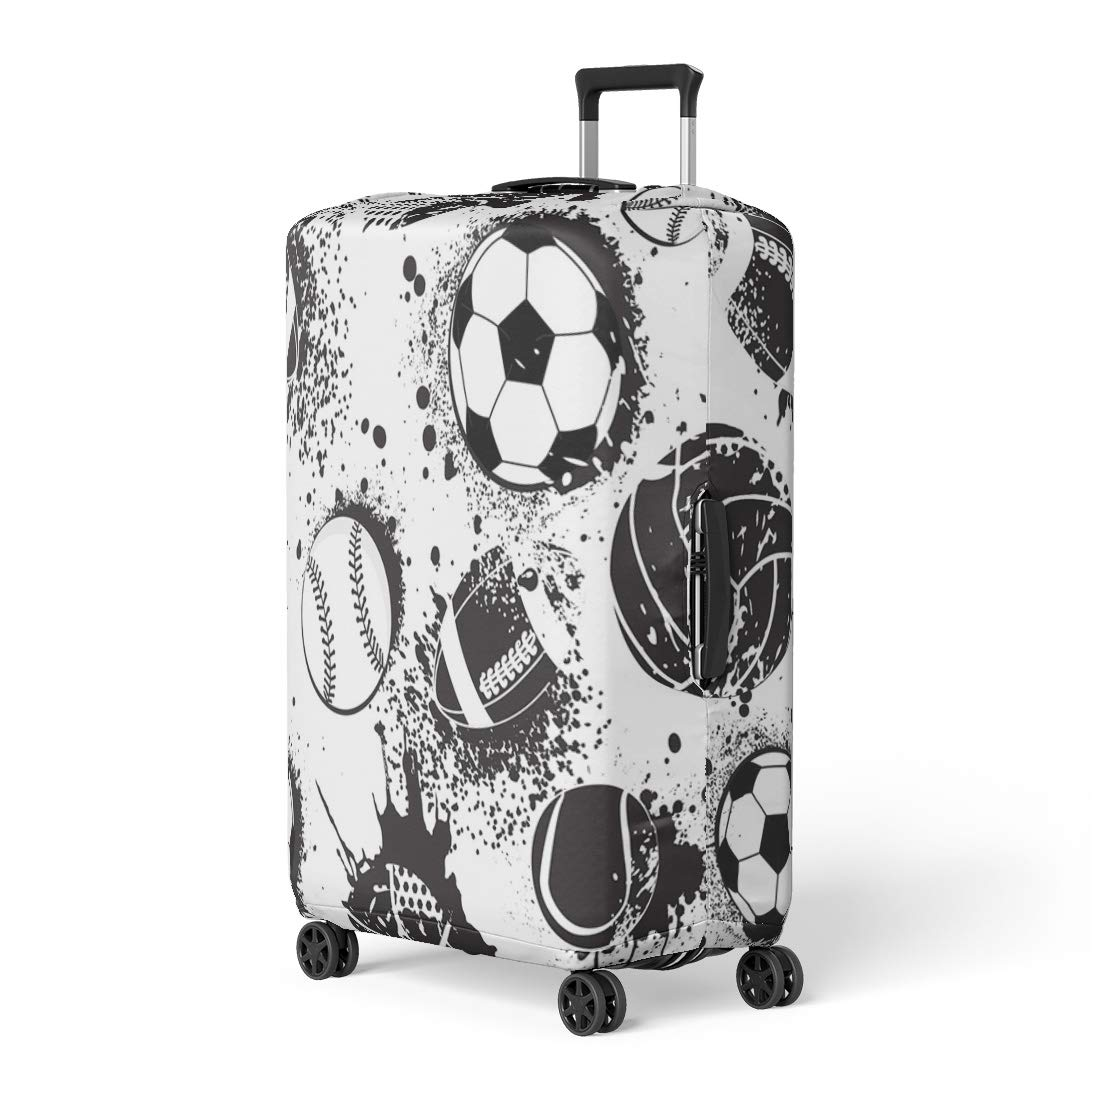 9aa0f4d9716f Amazon.com: Pinbeam Luggage Cover Abstract for Boys Football Pattern ...